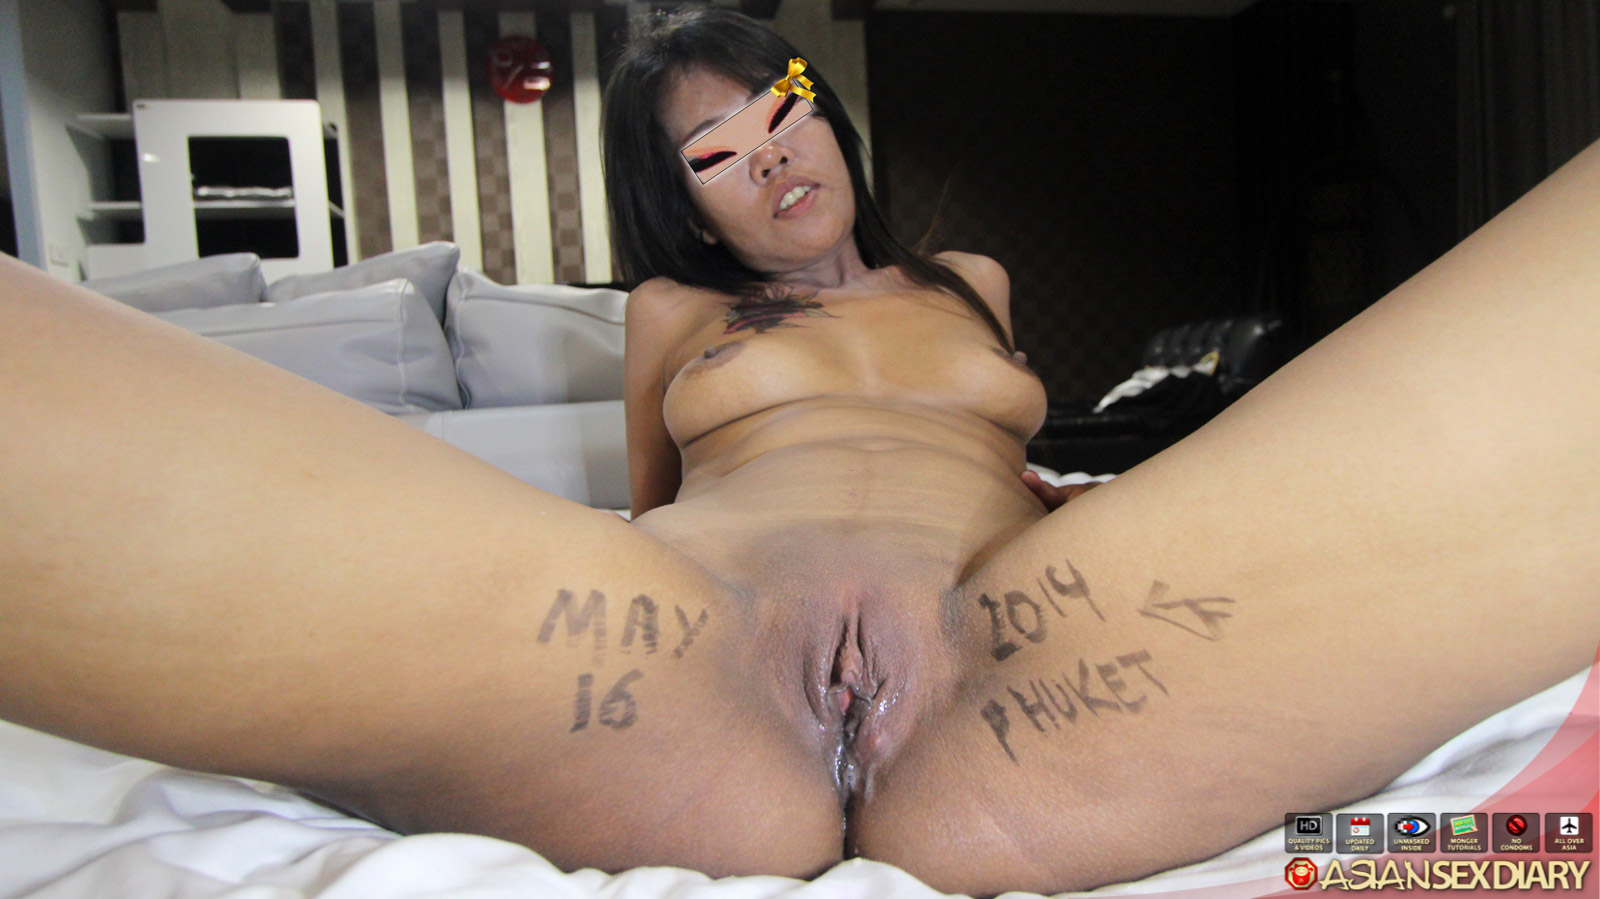 Asian milf sucks dick in gloryhole 4